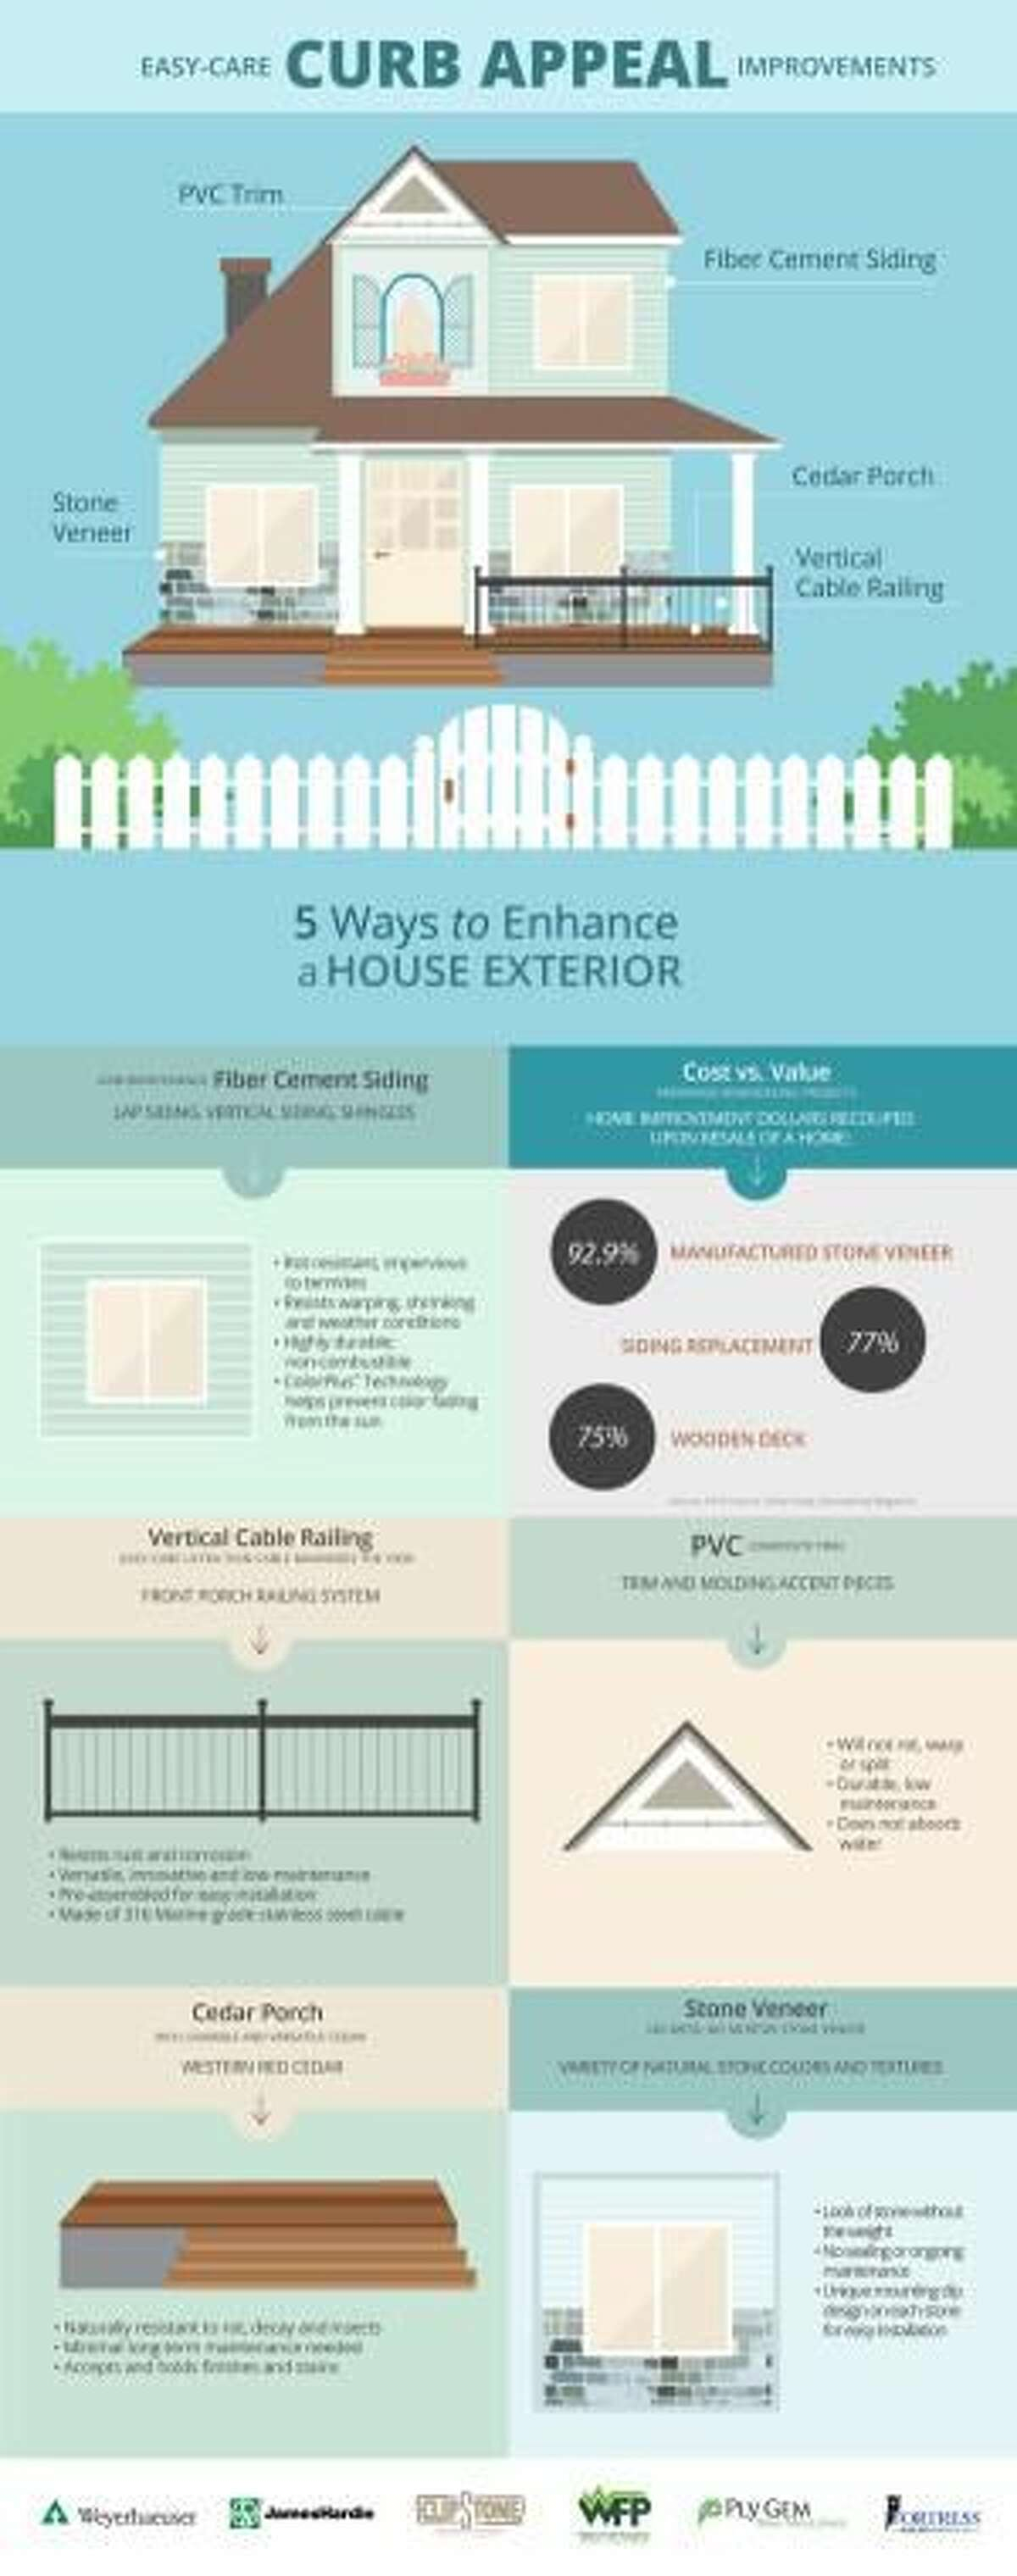 Enhance Your Home Exterior During National Curb Appeal Month